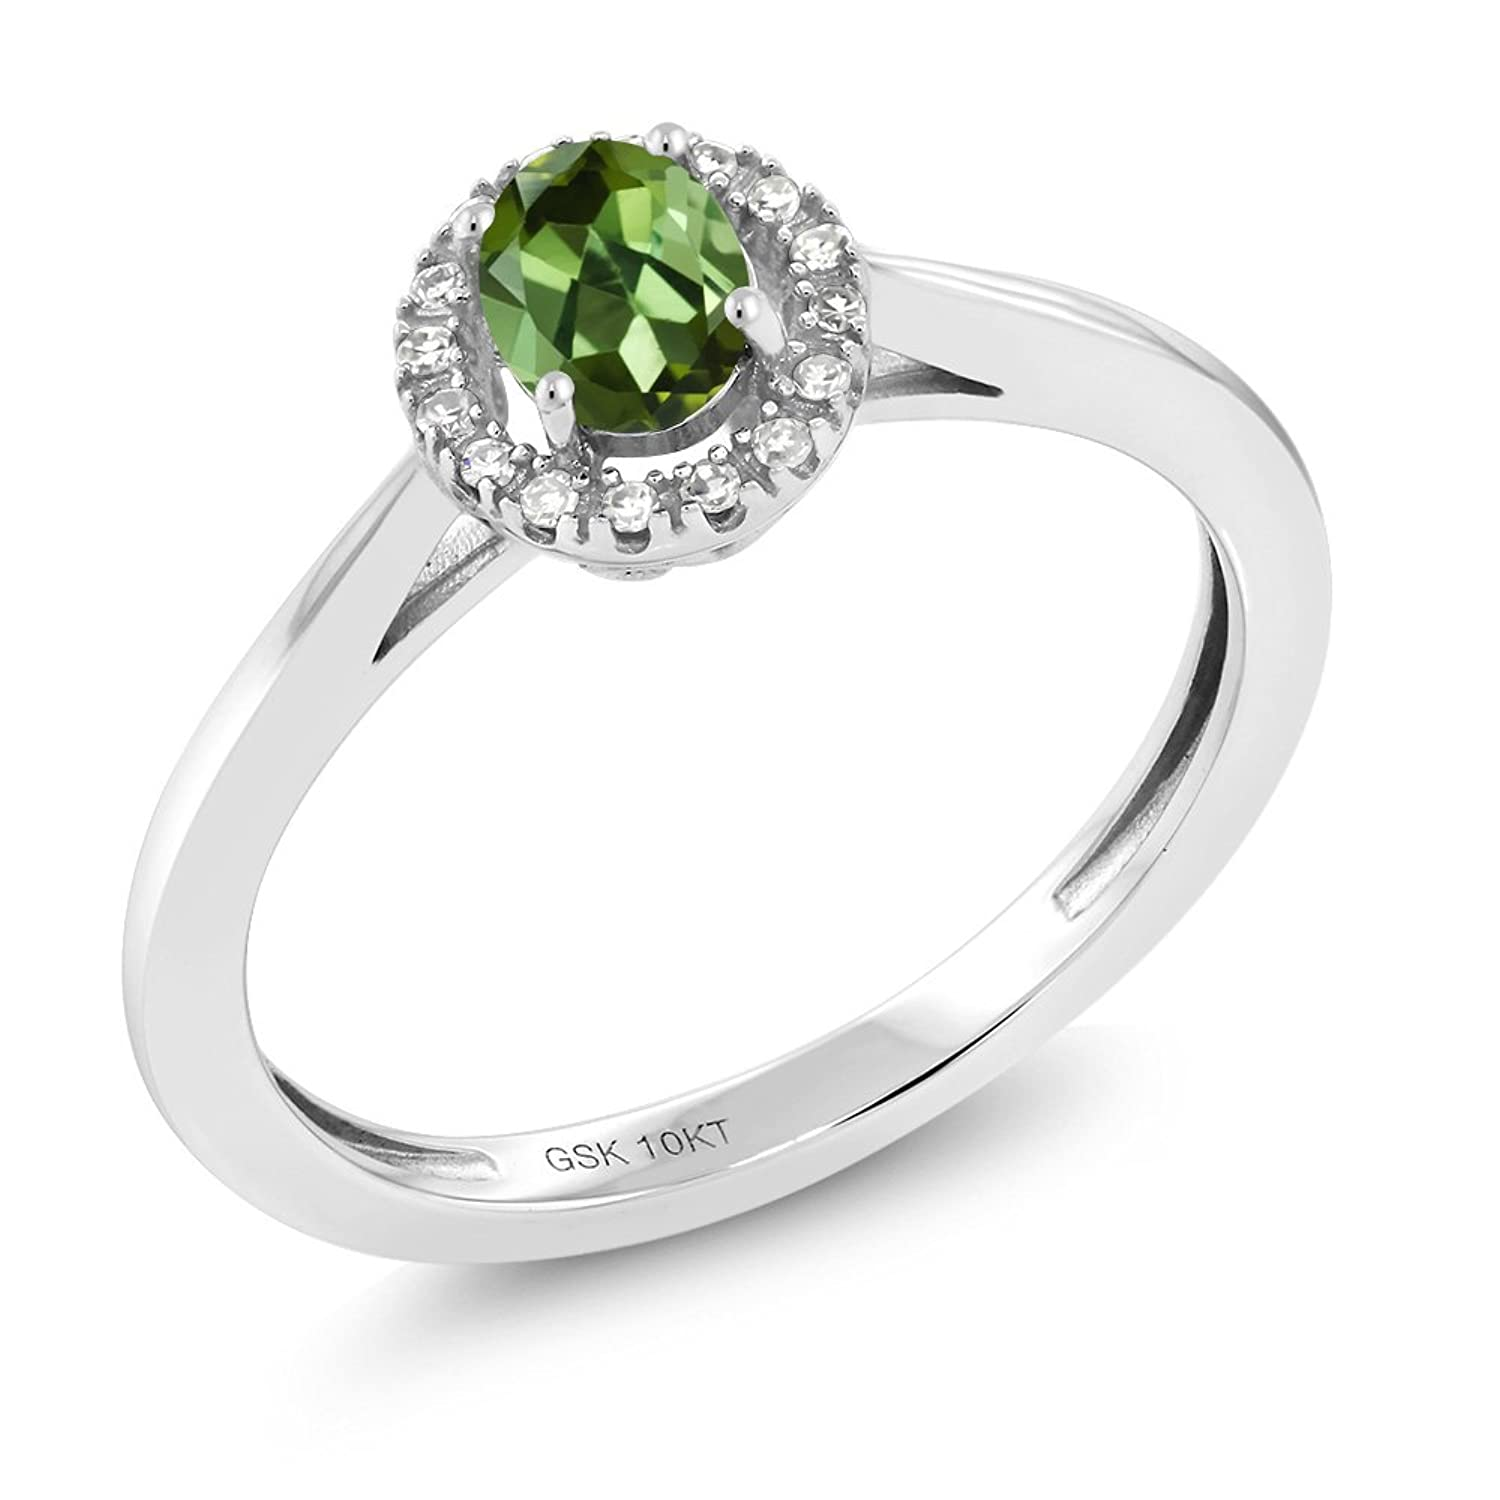 10K White Gold Diamond Engagement Ring with Oval Green Tourmaline (Available in size 5,6,7,8,9)